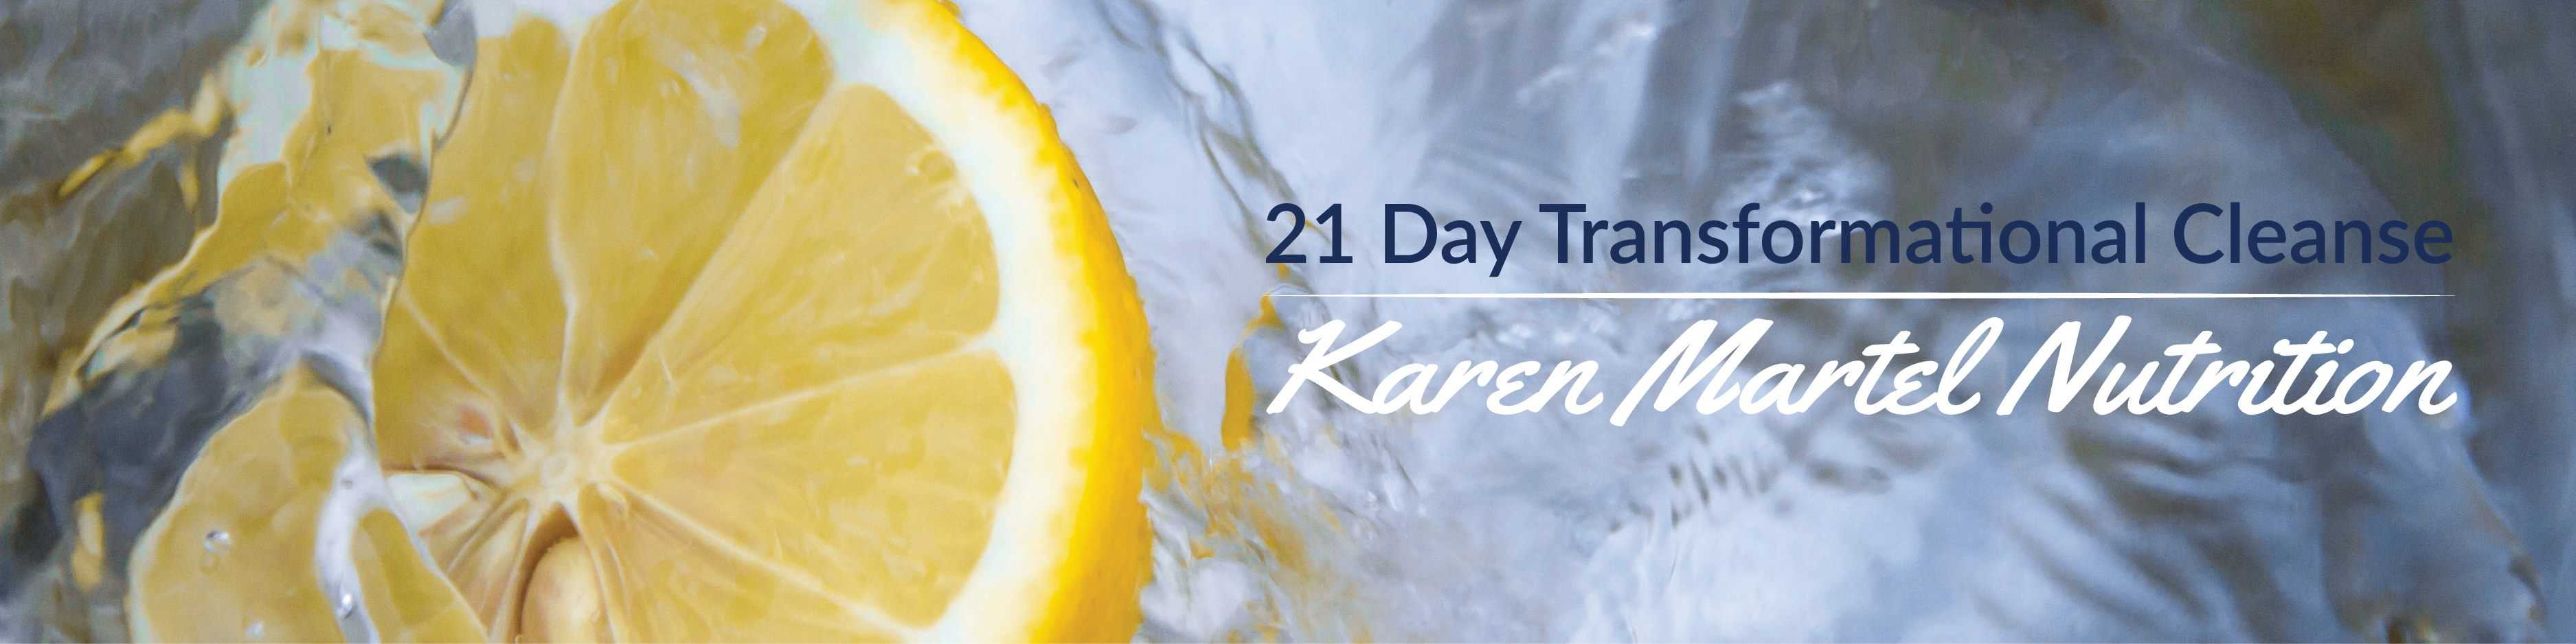 21 day transformational nutrition cleanse karen martel nutrition 1504529910208306634011262297885895o transformational nutrition cleanse fandeluxe Image collections